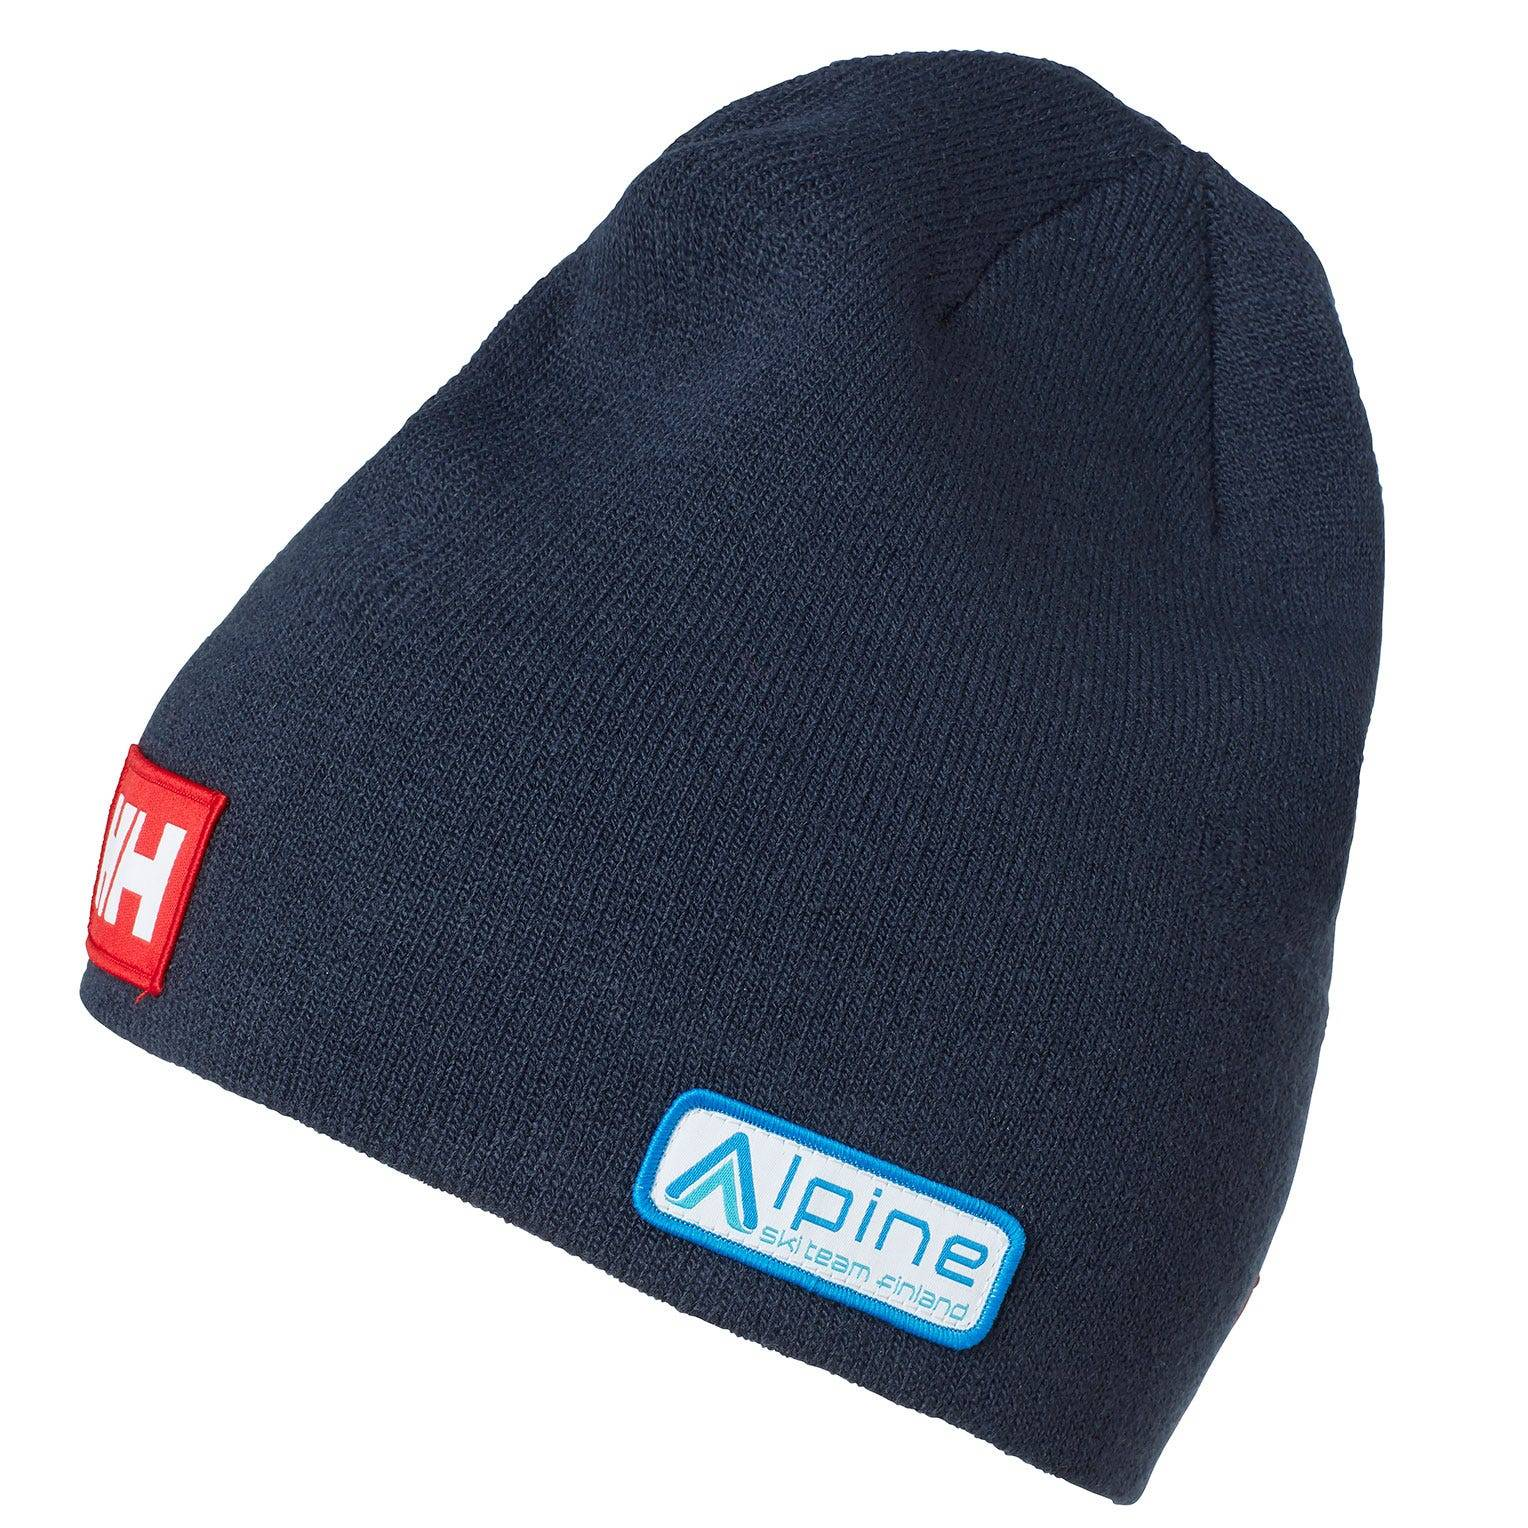 Helly Hansen Outline Beanie Navy STD